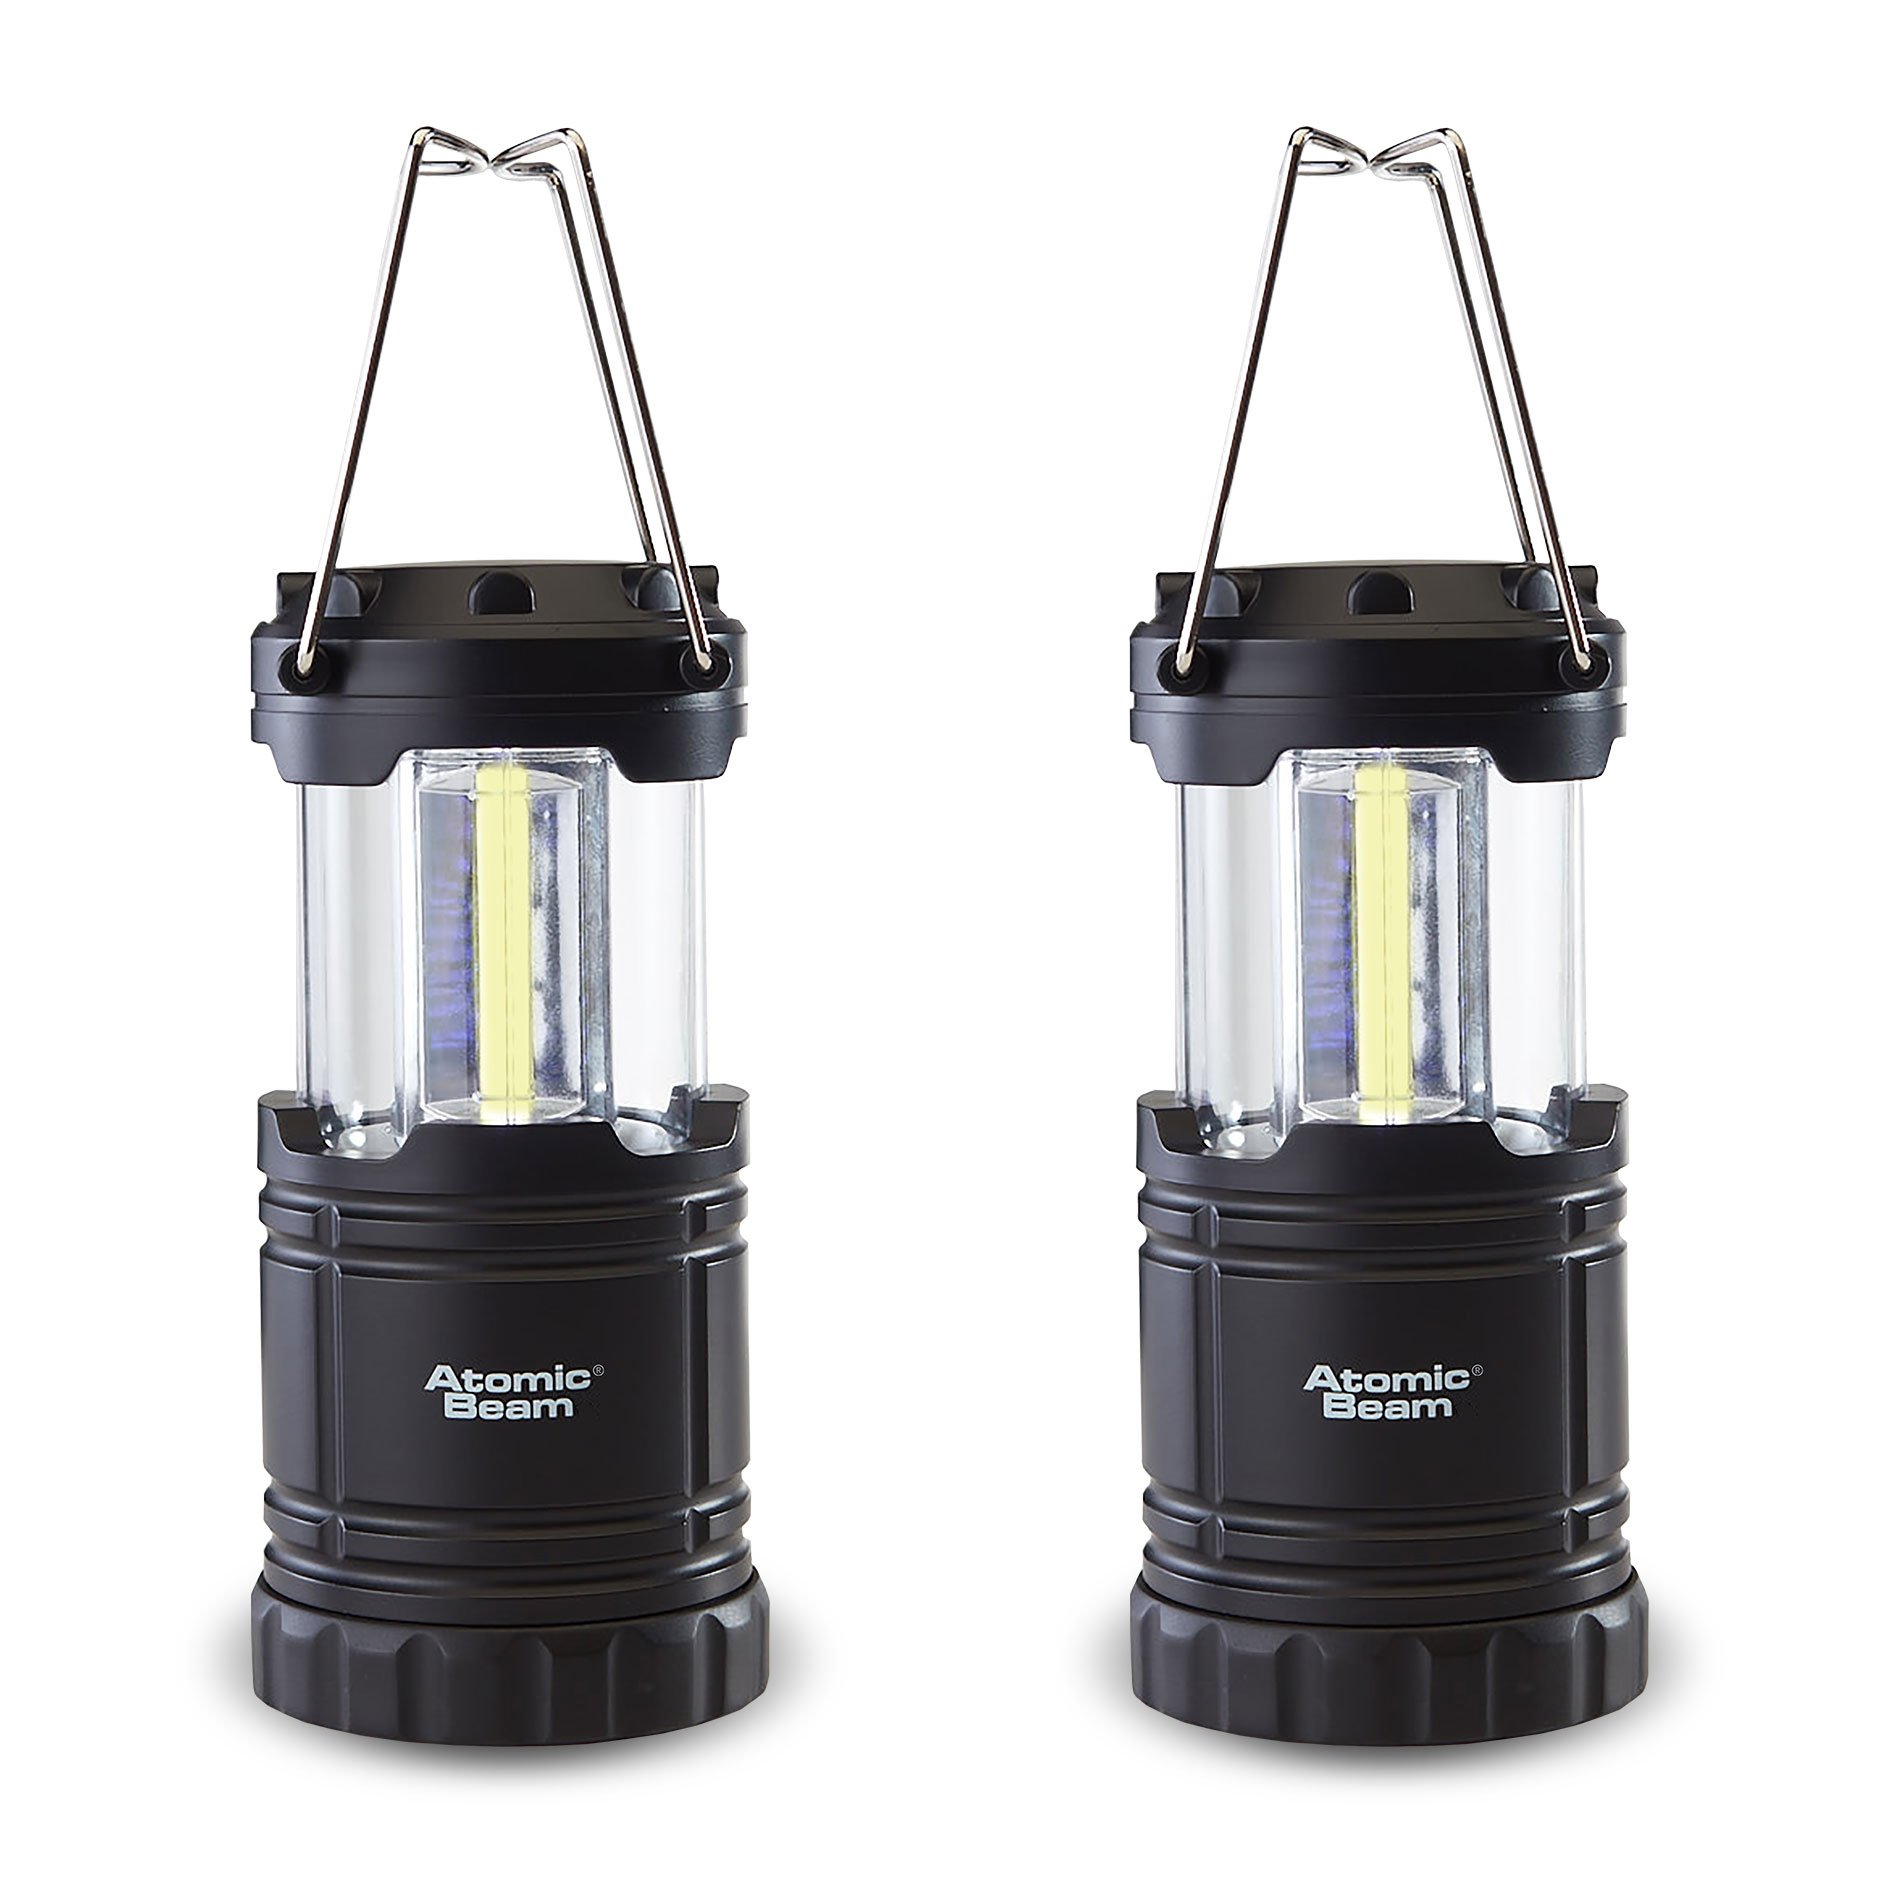 Perfect Tent Light for Power Outage LED Camping Lanterns Waterproof Lantern Flashlight Hiking Hurricane Survival 4 Light Modes 2 Pack COB Battery Lantern 6D Batteries Included 1200LM